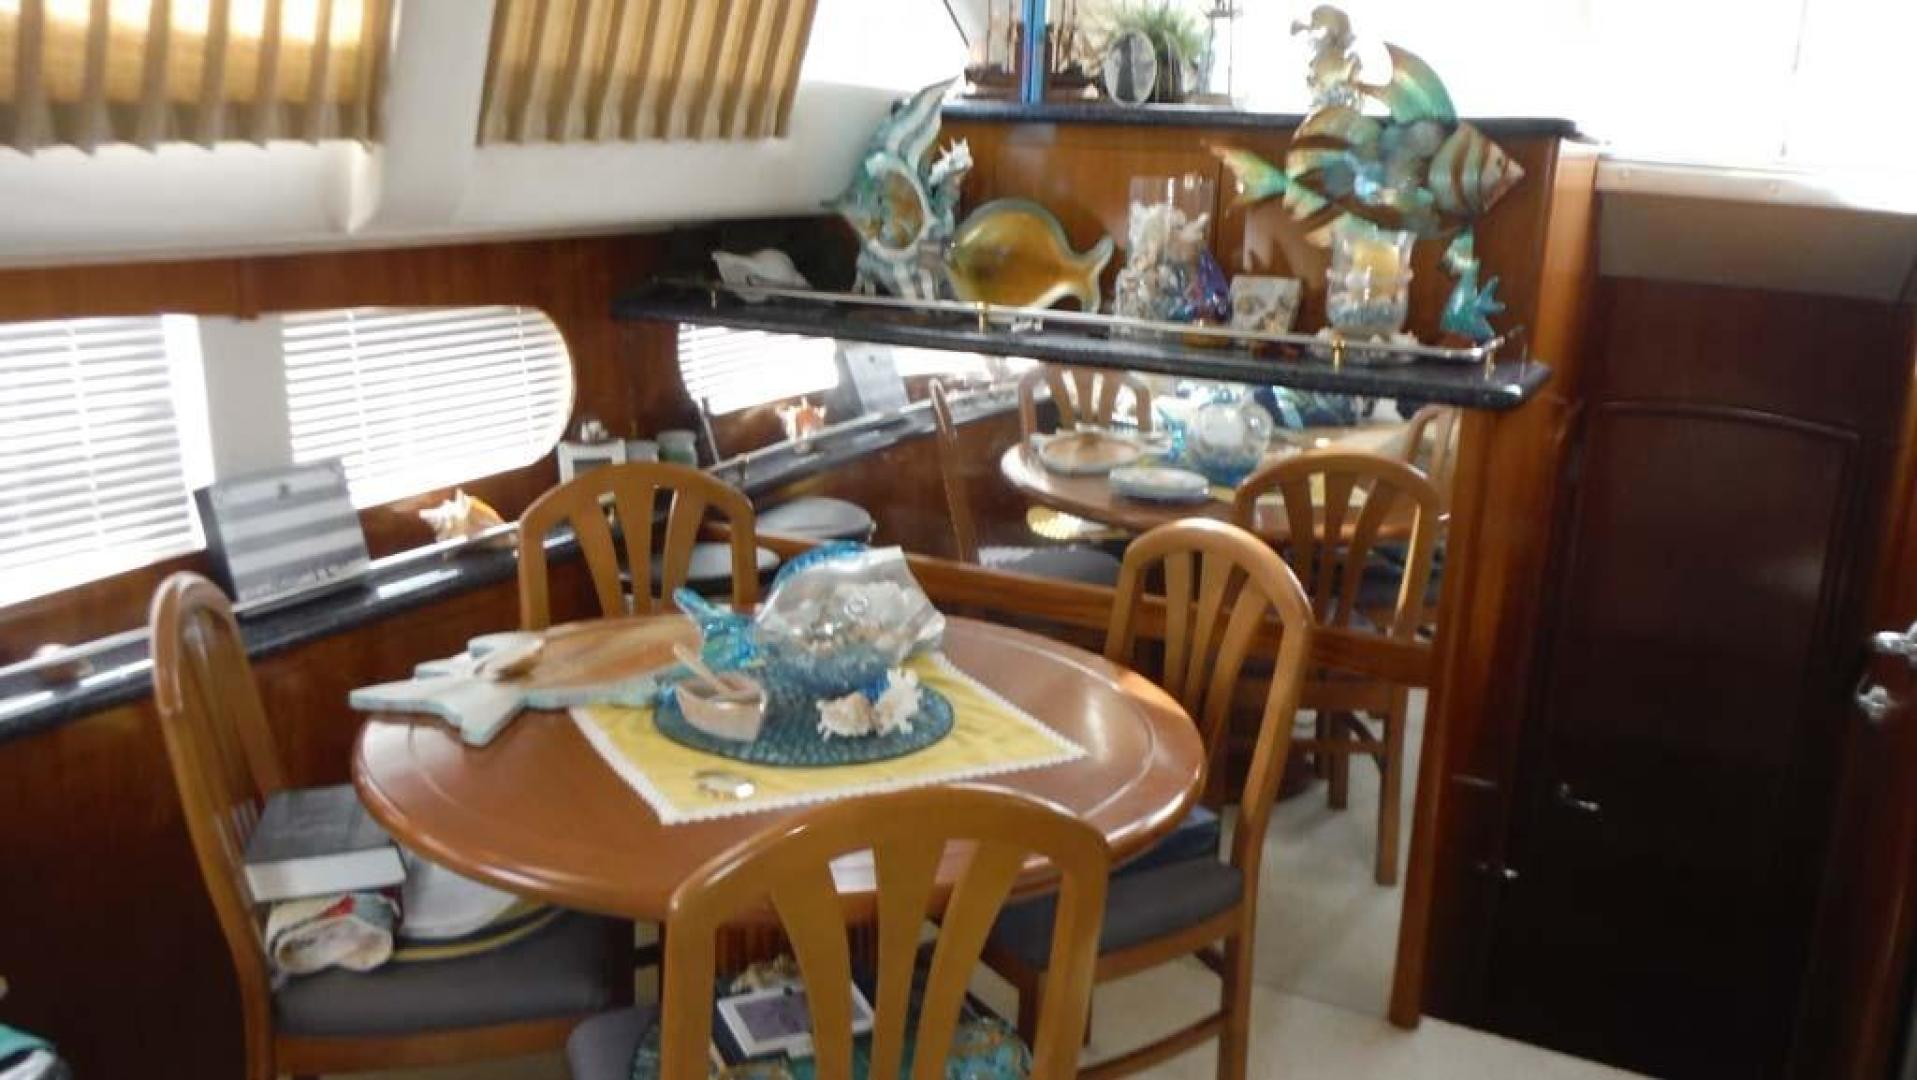 Carver-506 Aft Cabin Motor Yacht 2000-Country Boy Red Wing-Minnesota-United States-Dinette-919380 | Thumbnail